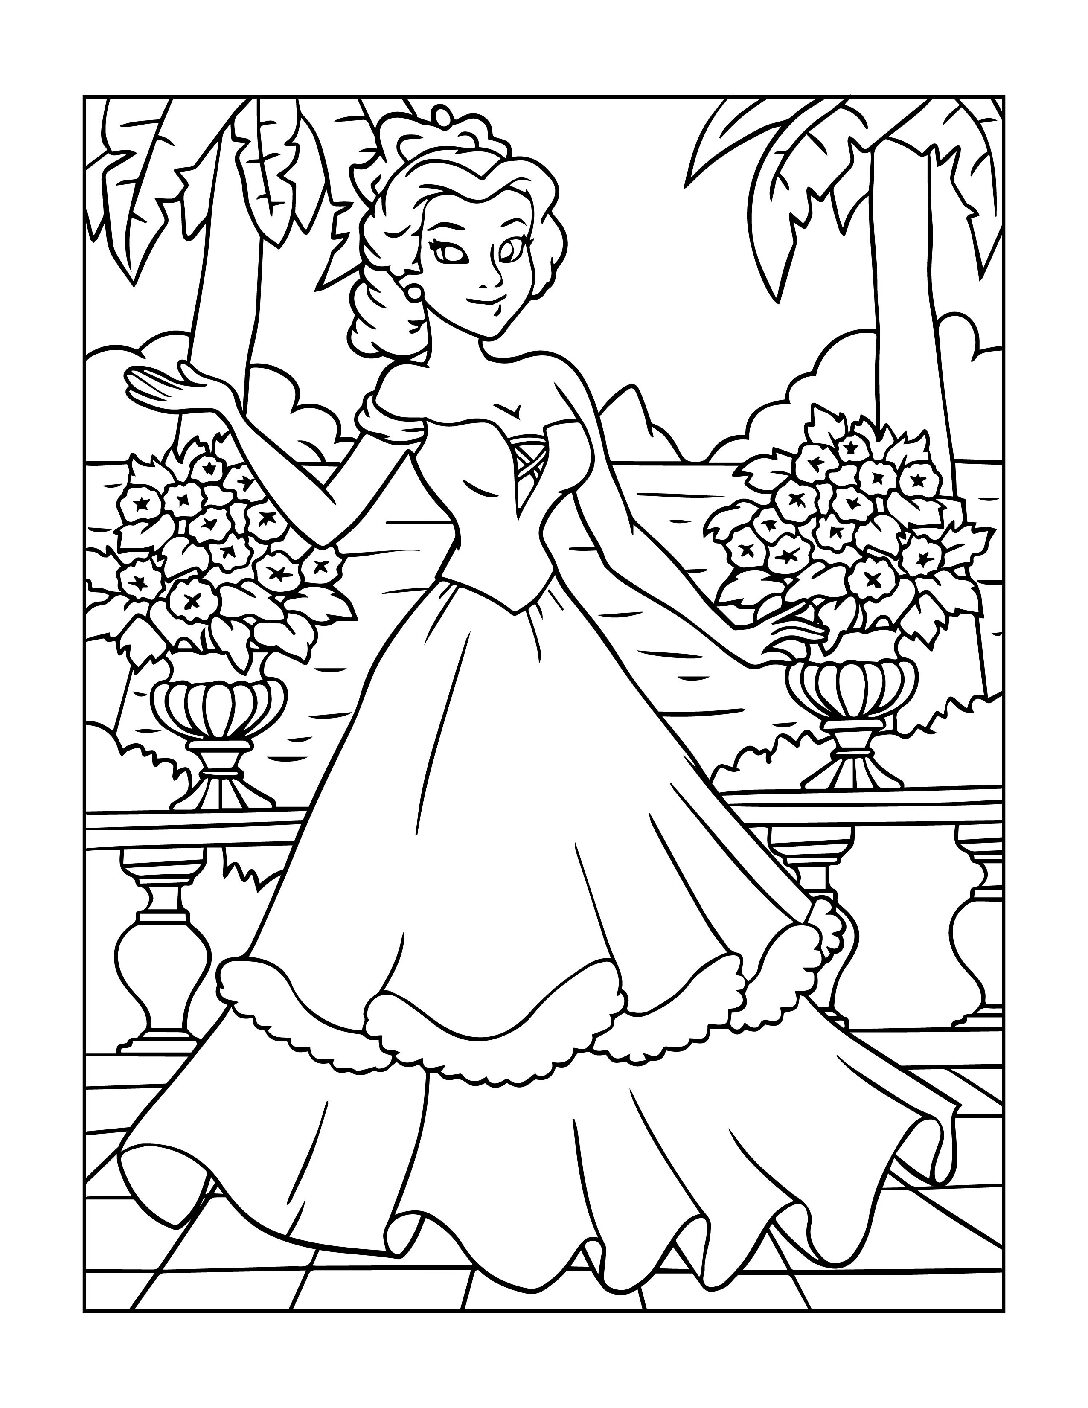 Coloring-Pages-Princess-17-01-pdf Free Printable Princesses Colouring Pages